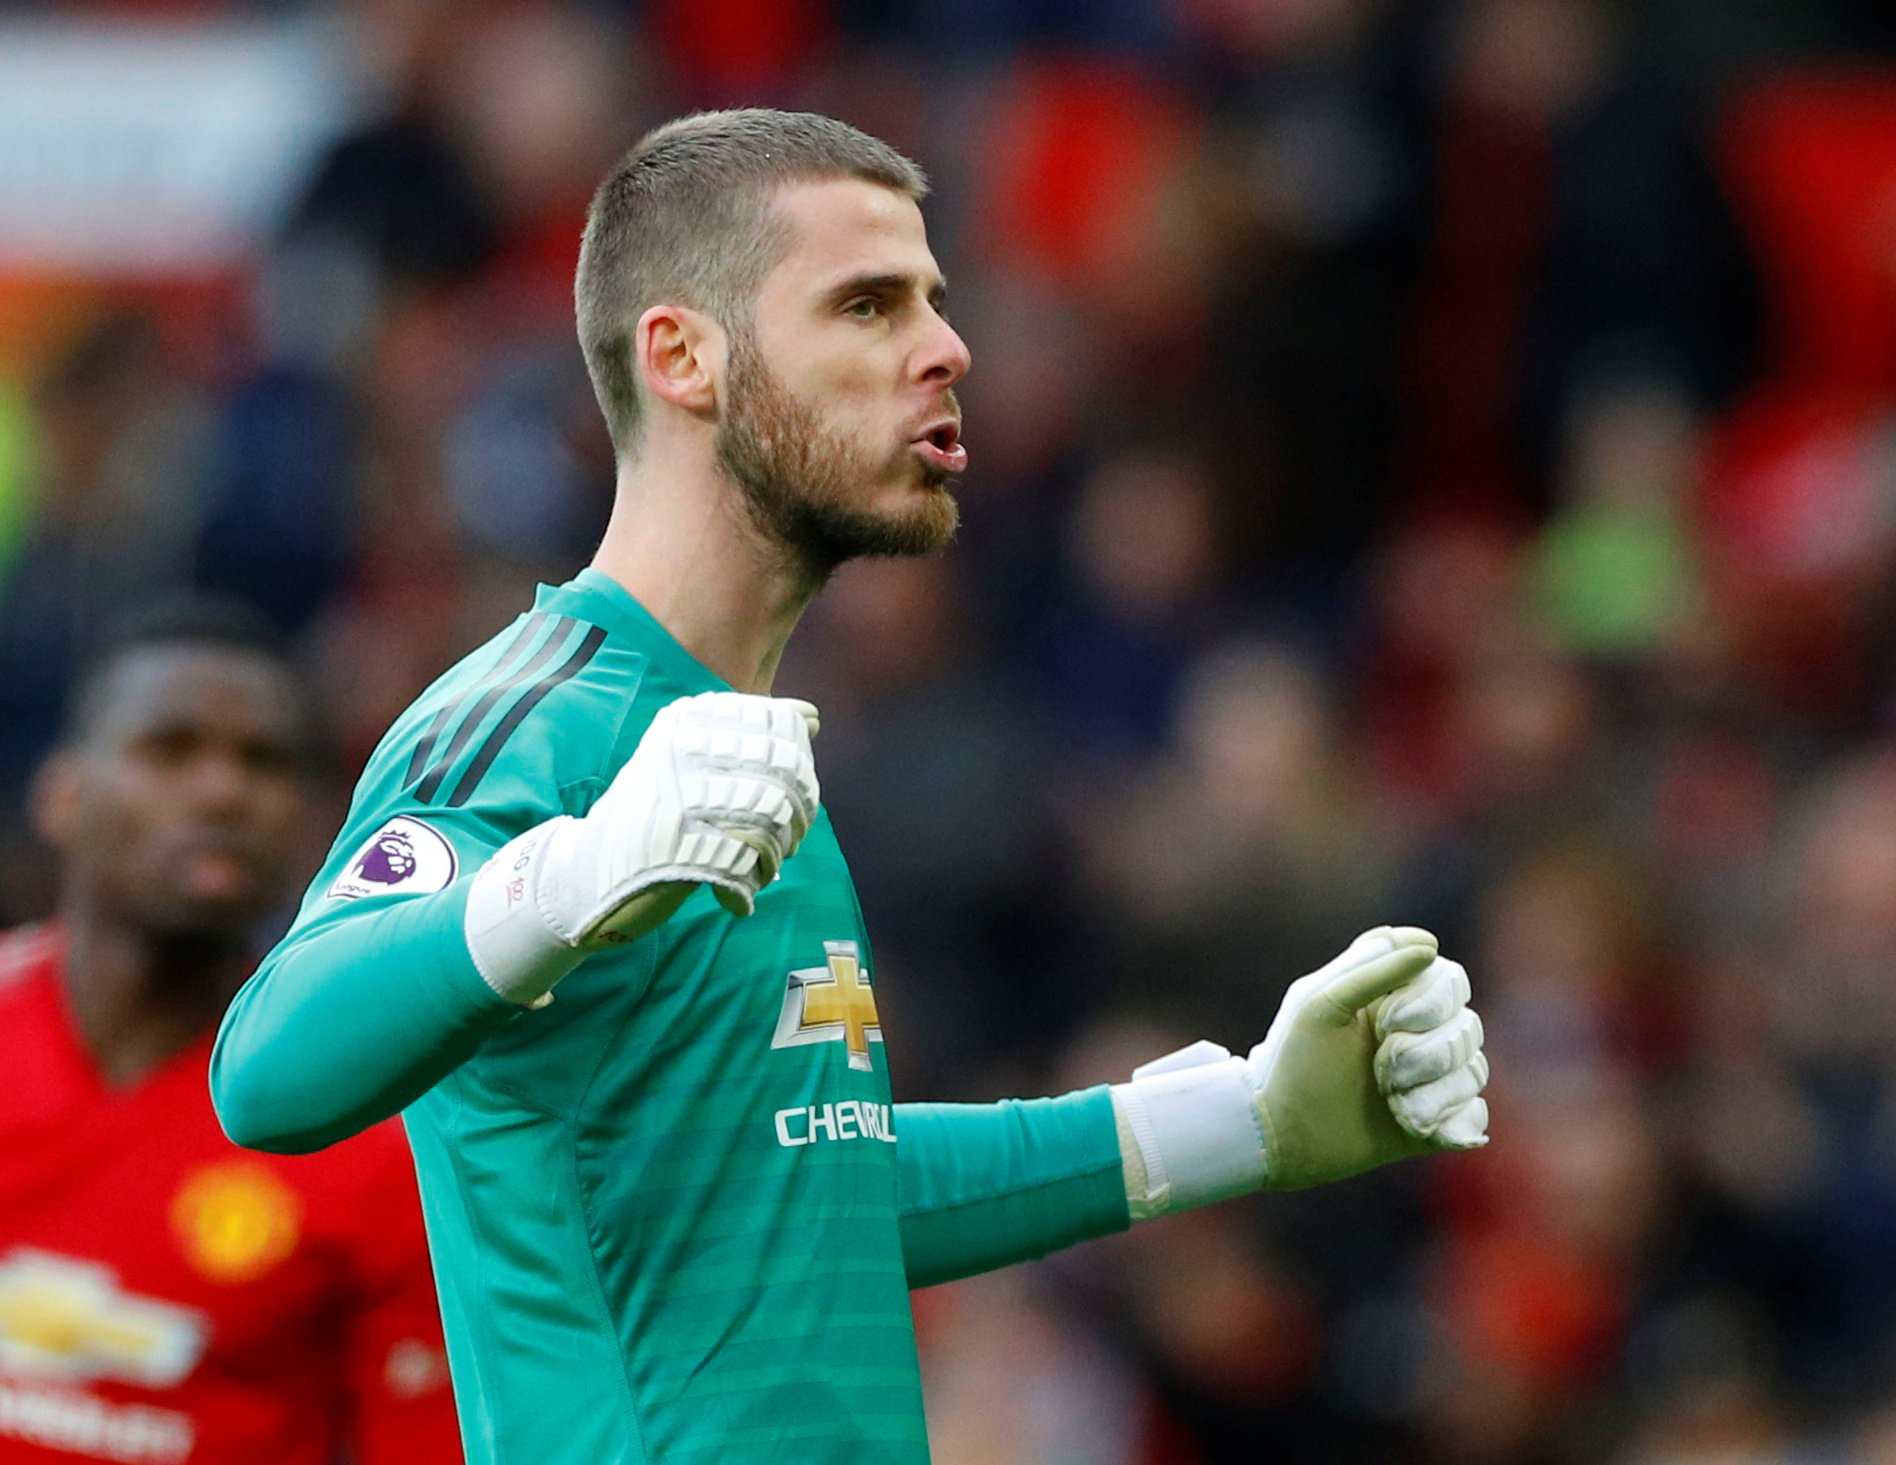 """Soccer Football - Premier League - Manchester United v West Ham United - Old Trafford, Manchester, Britain - April 13, 2019 Manchester United's David de Gea celebrates after the match REUTERS/Phil Noble EDITORIAL USE ONLY. No use with unauthorized audio, video, data, fixture lists, club/league logos or """"live"""" services. Online in-match use limited to 75 images, no video emulation. No use in betting, games or single club/league/player publications. Please contact your account representative for further details."""